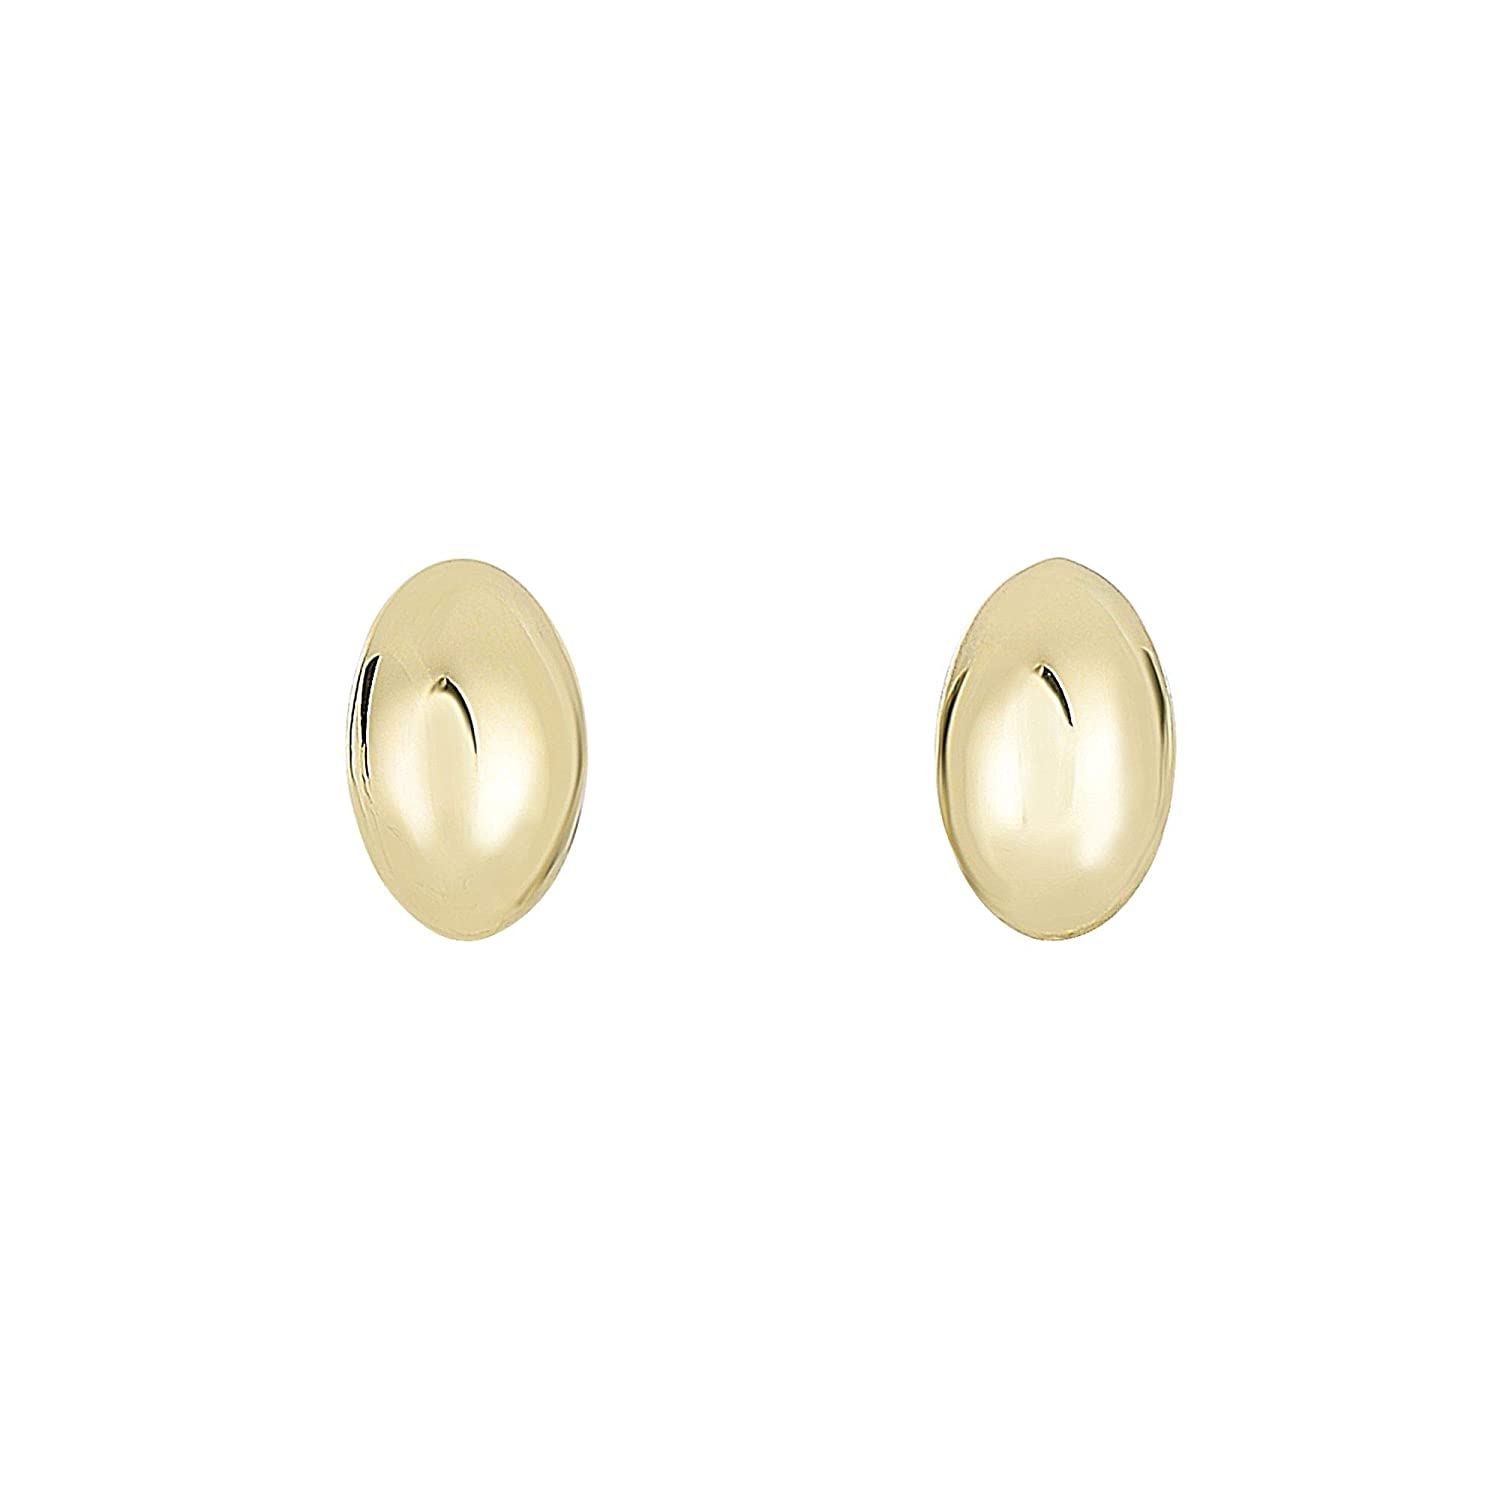 14K Yellow Gold 6.1x9.9mm Shiny Small Puffed Marquise Shape Post Earrings Push Back by IcedTime